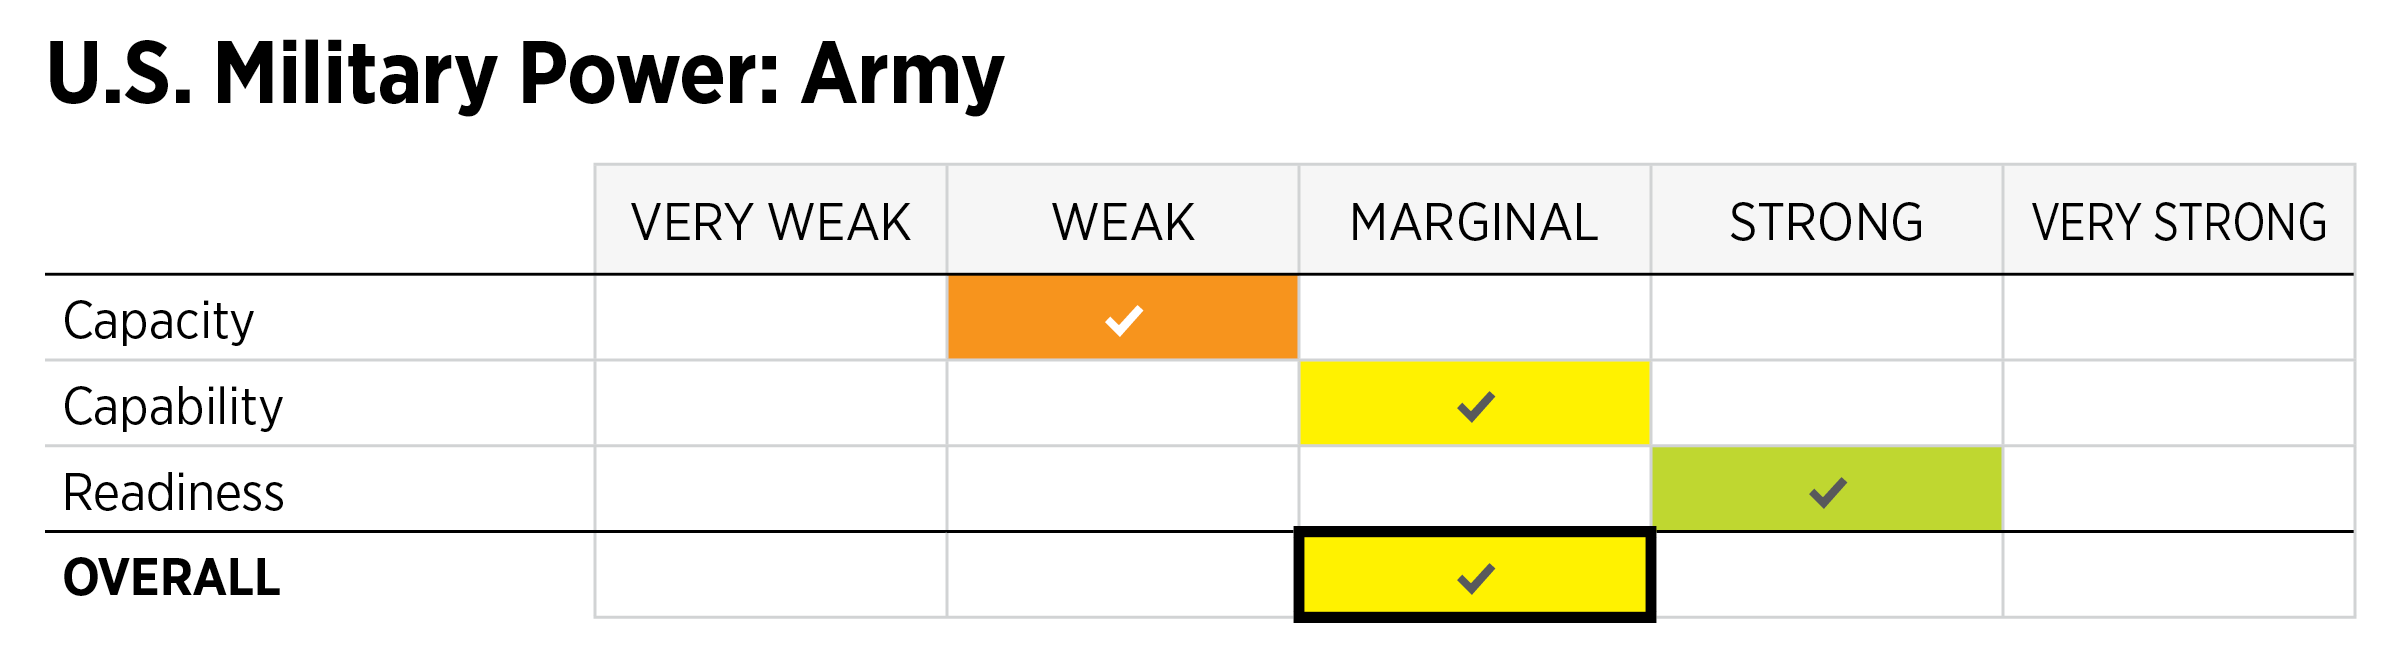 2019_IndexOfUSMilitaryStrength_ASSESSMENTS_Power_ARMY.png